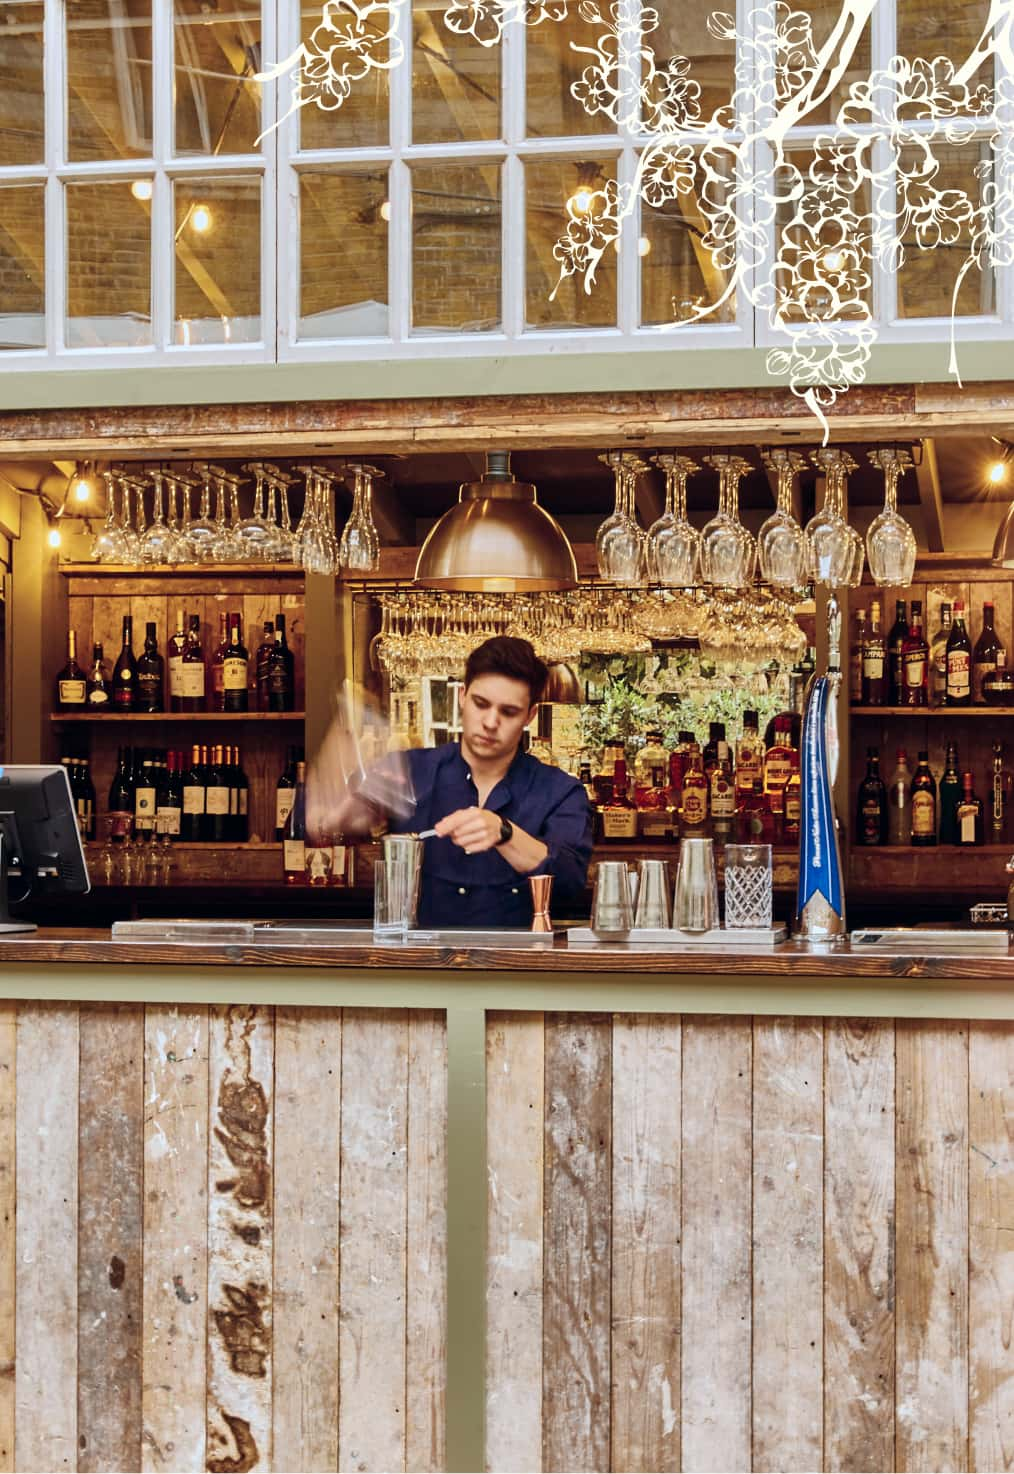 A mixologist making making cocktails at the Courtyard bar in Stanley's Chelsea